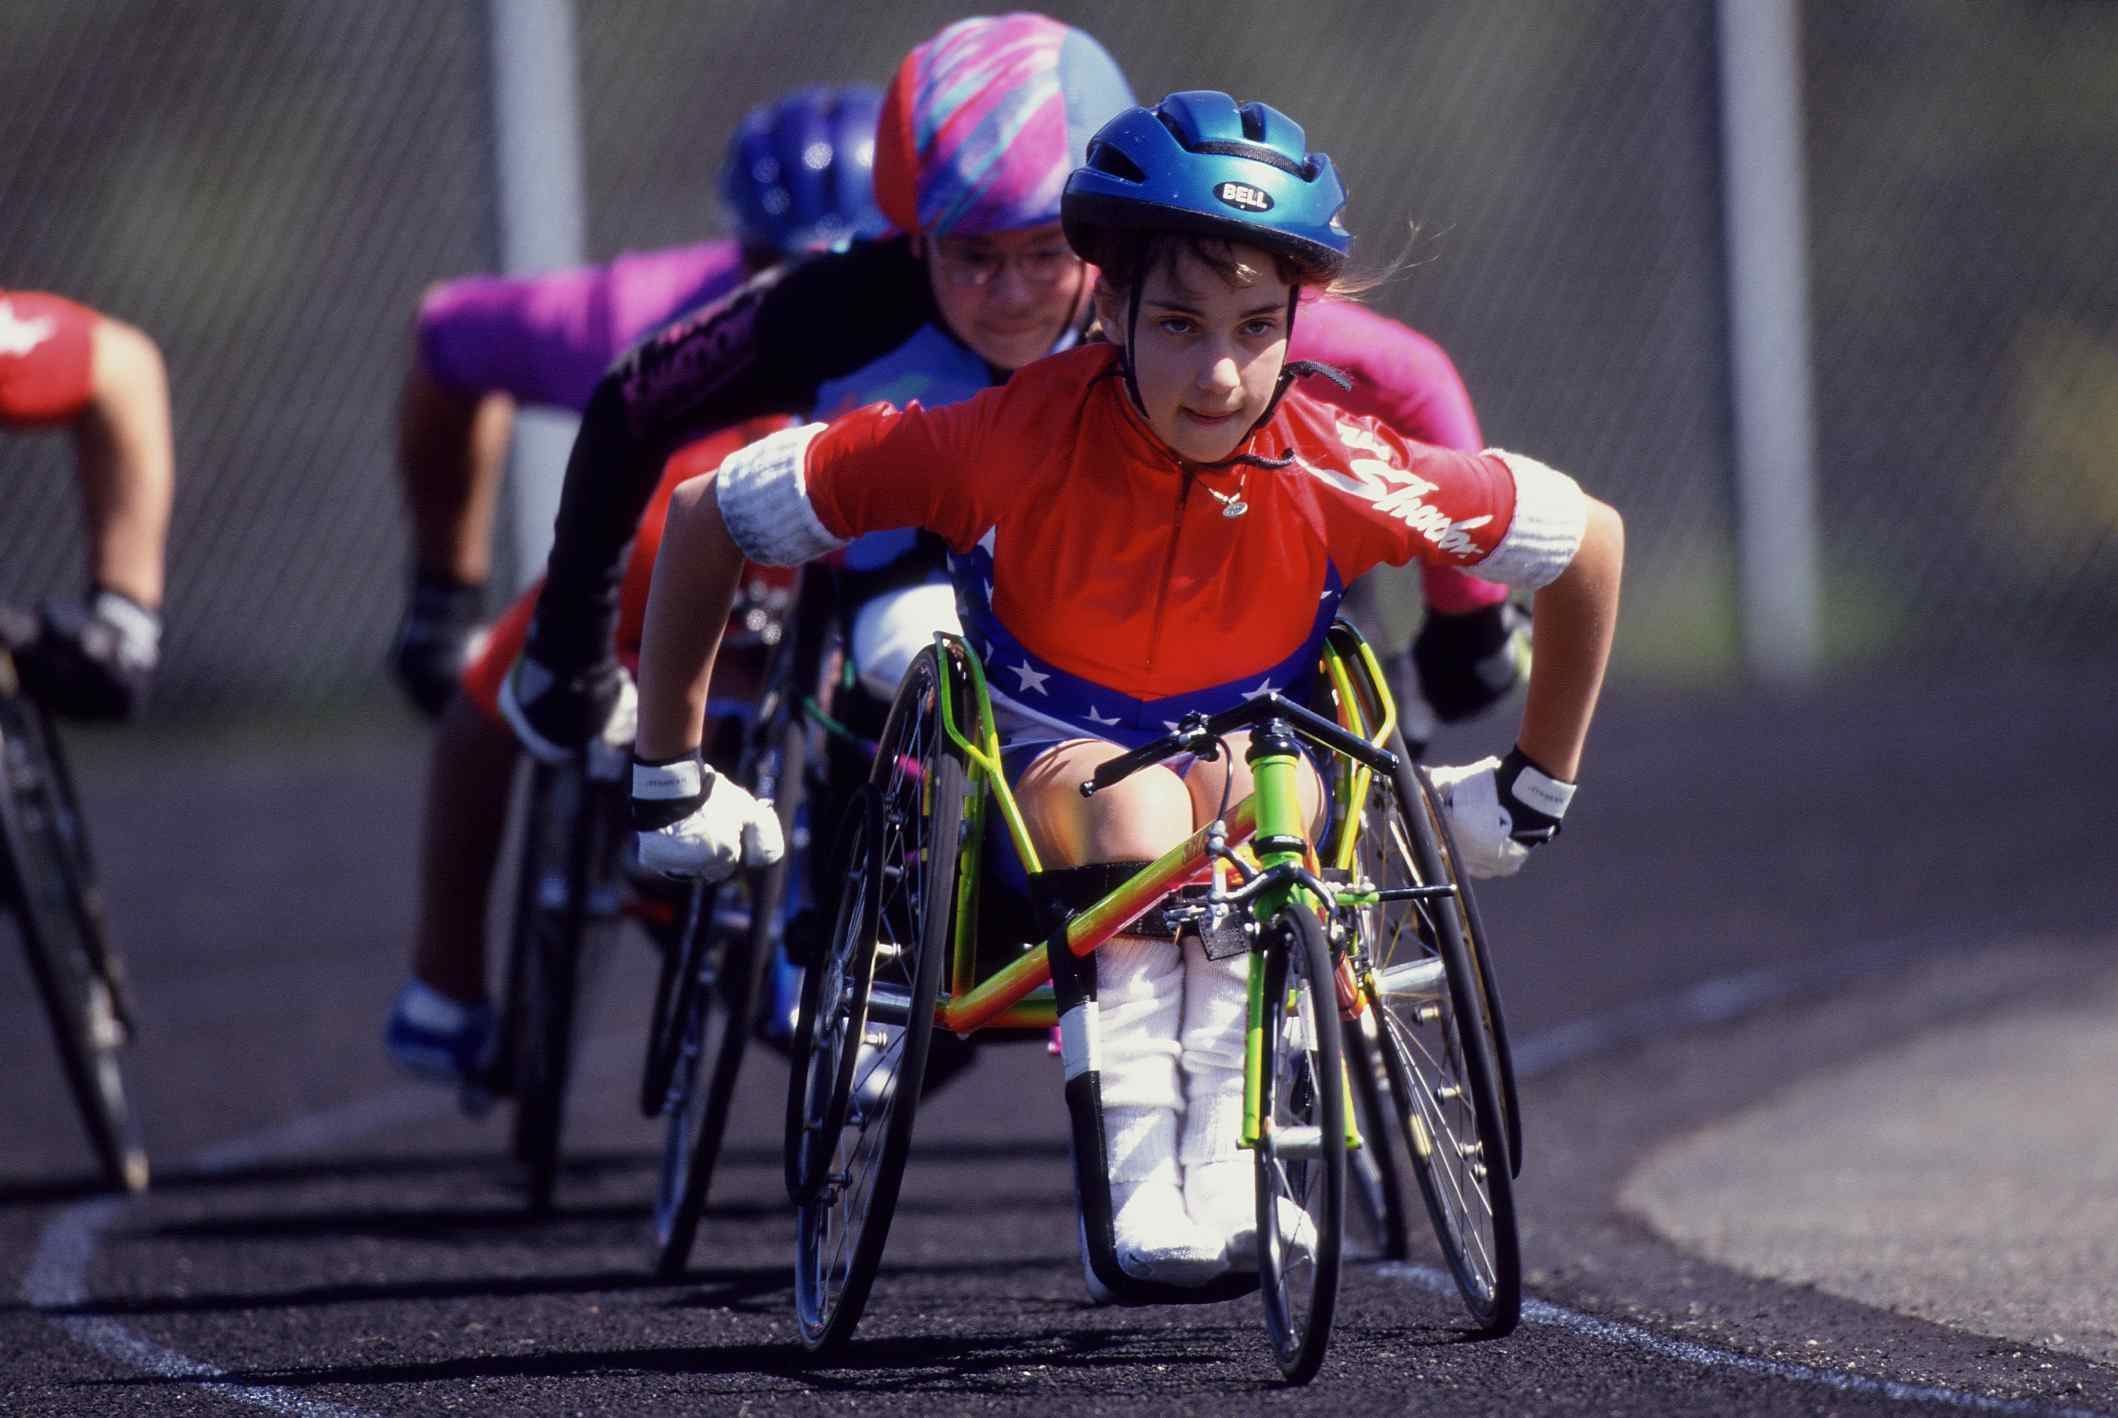 Fitness Activities For Kids With Special Needs